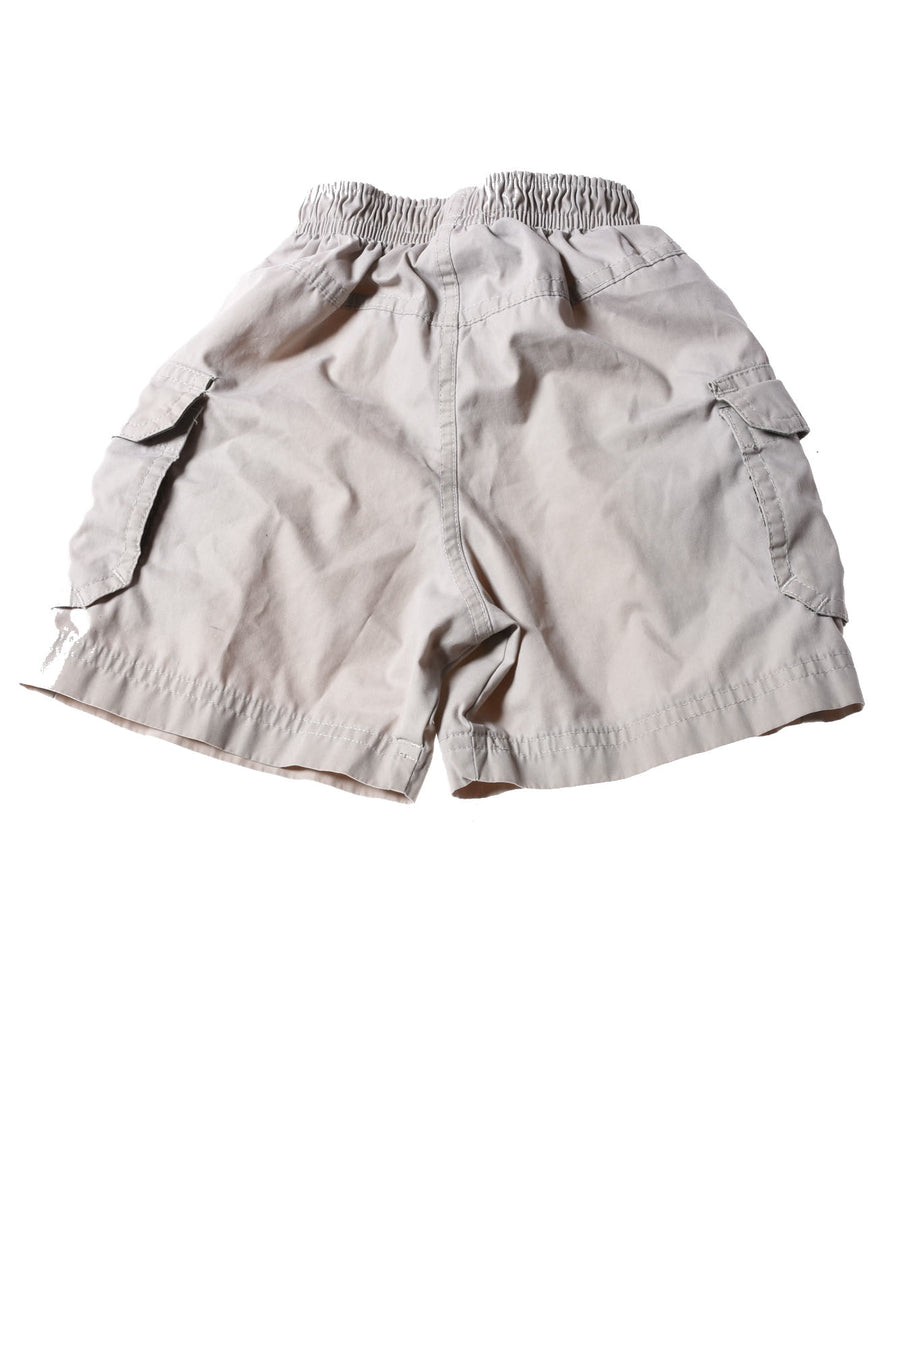 USED Oshkosh Baby Shorts 12 Months Tan